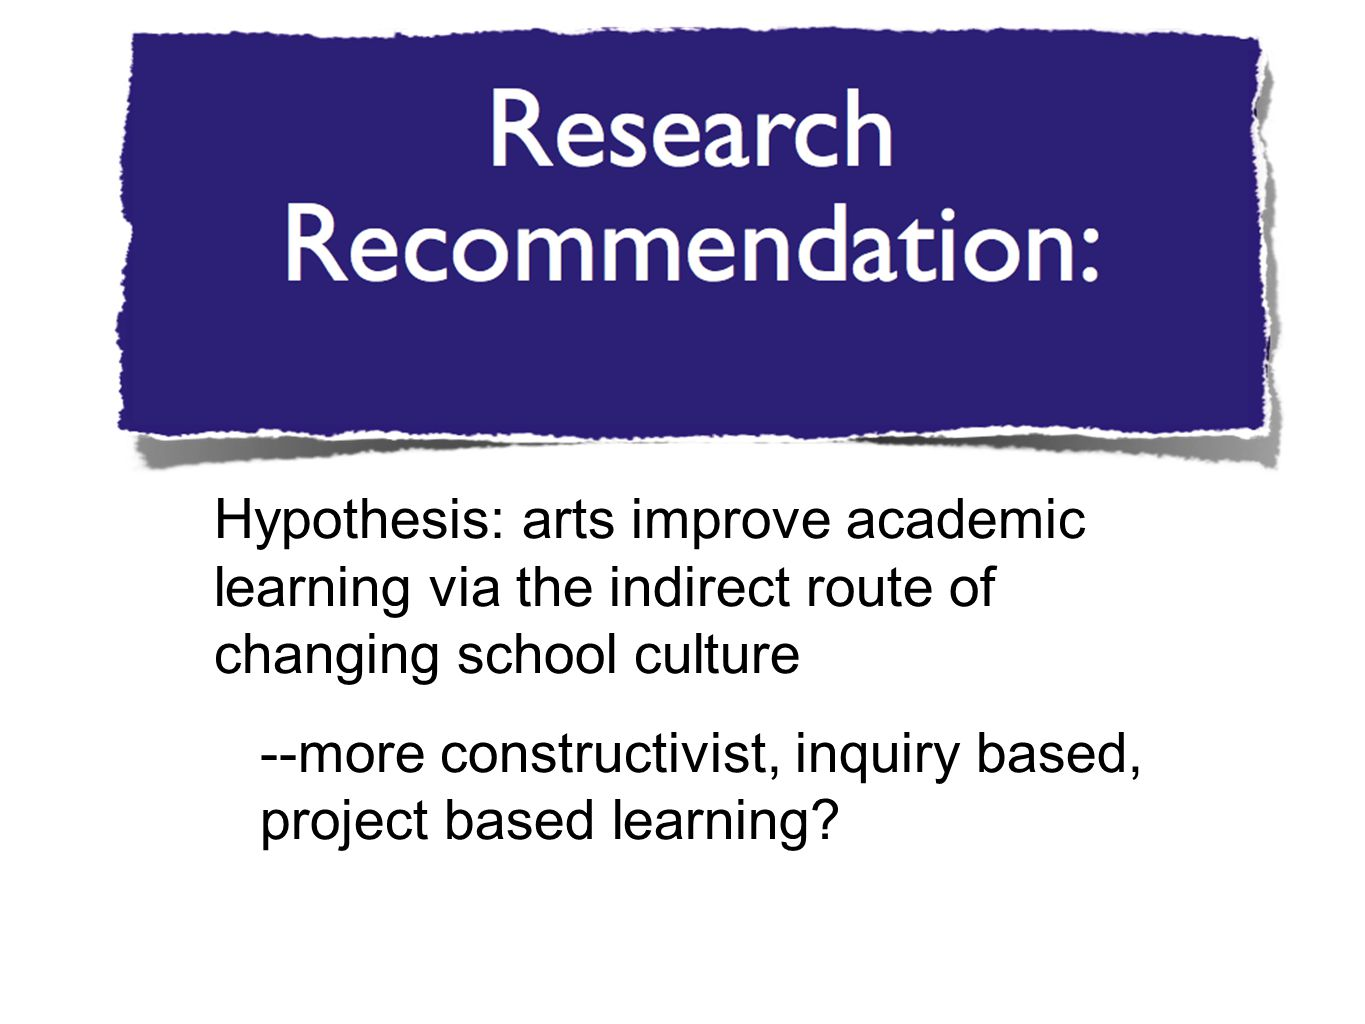 Hypothesis: arts improve academic learning via the indirect route of changing school culture --more constructivist, inquiry based, project based learning